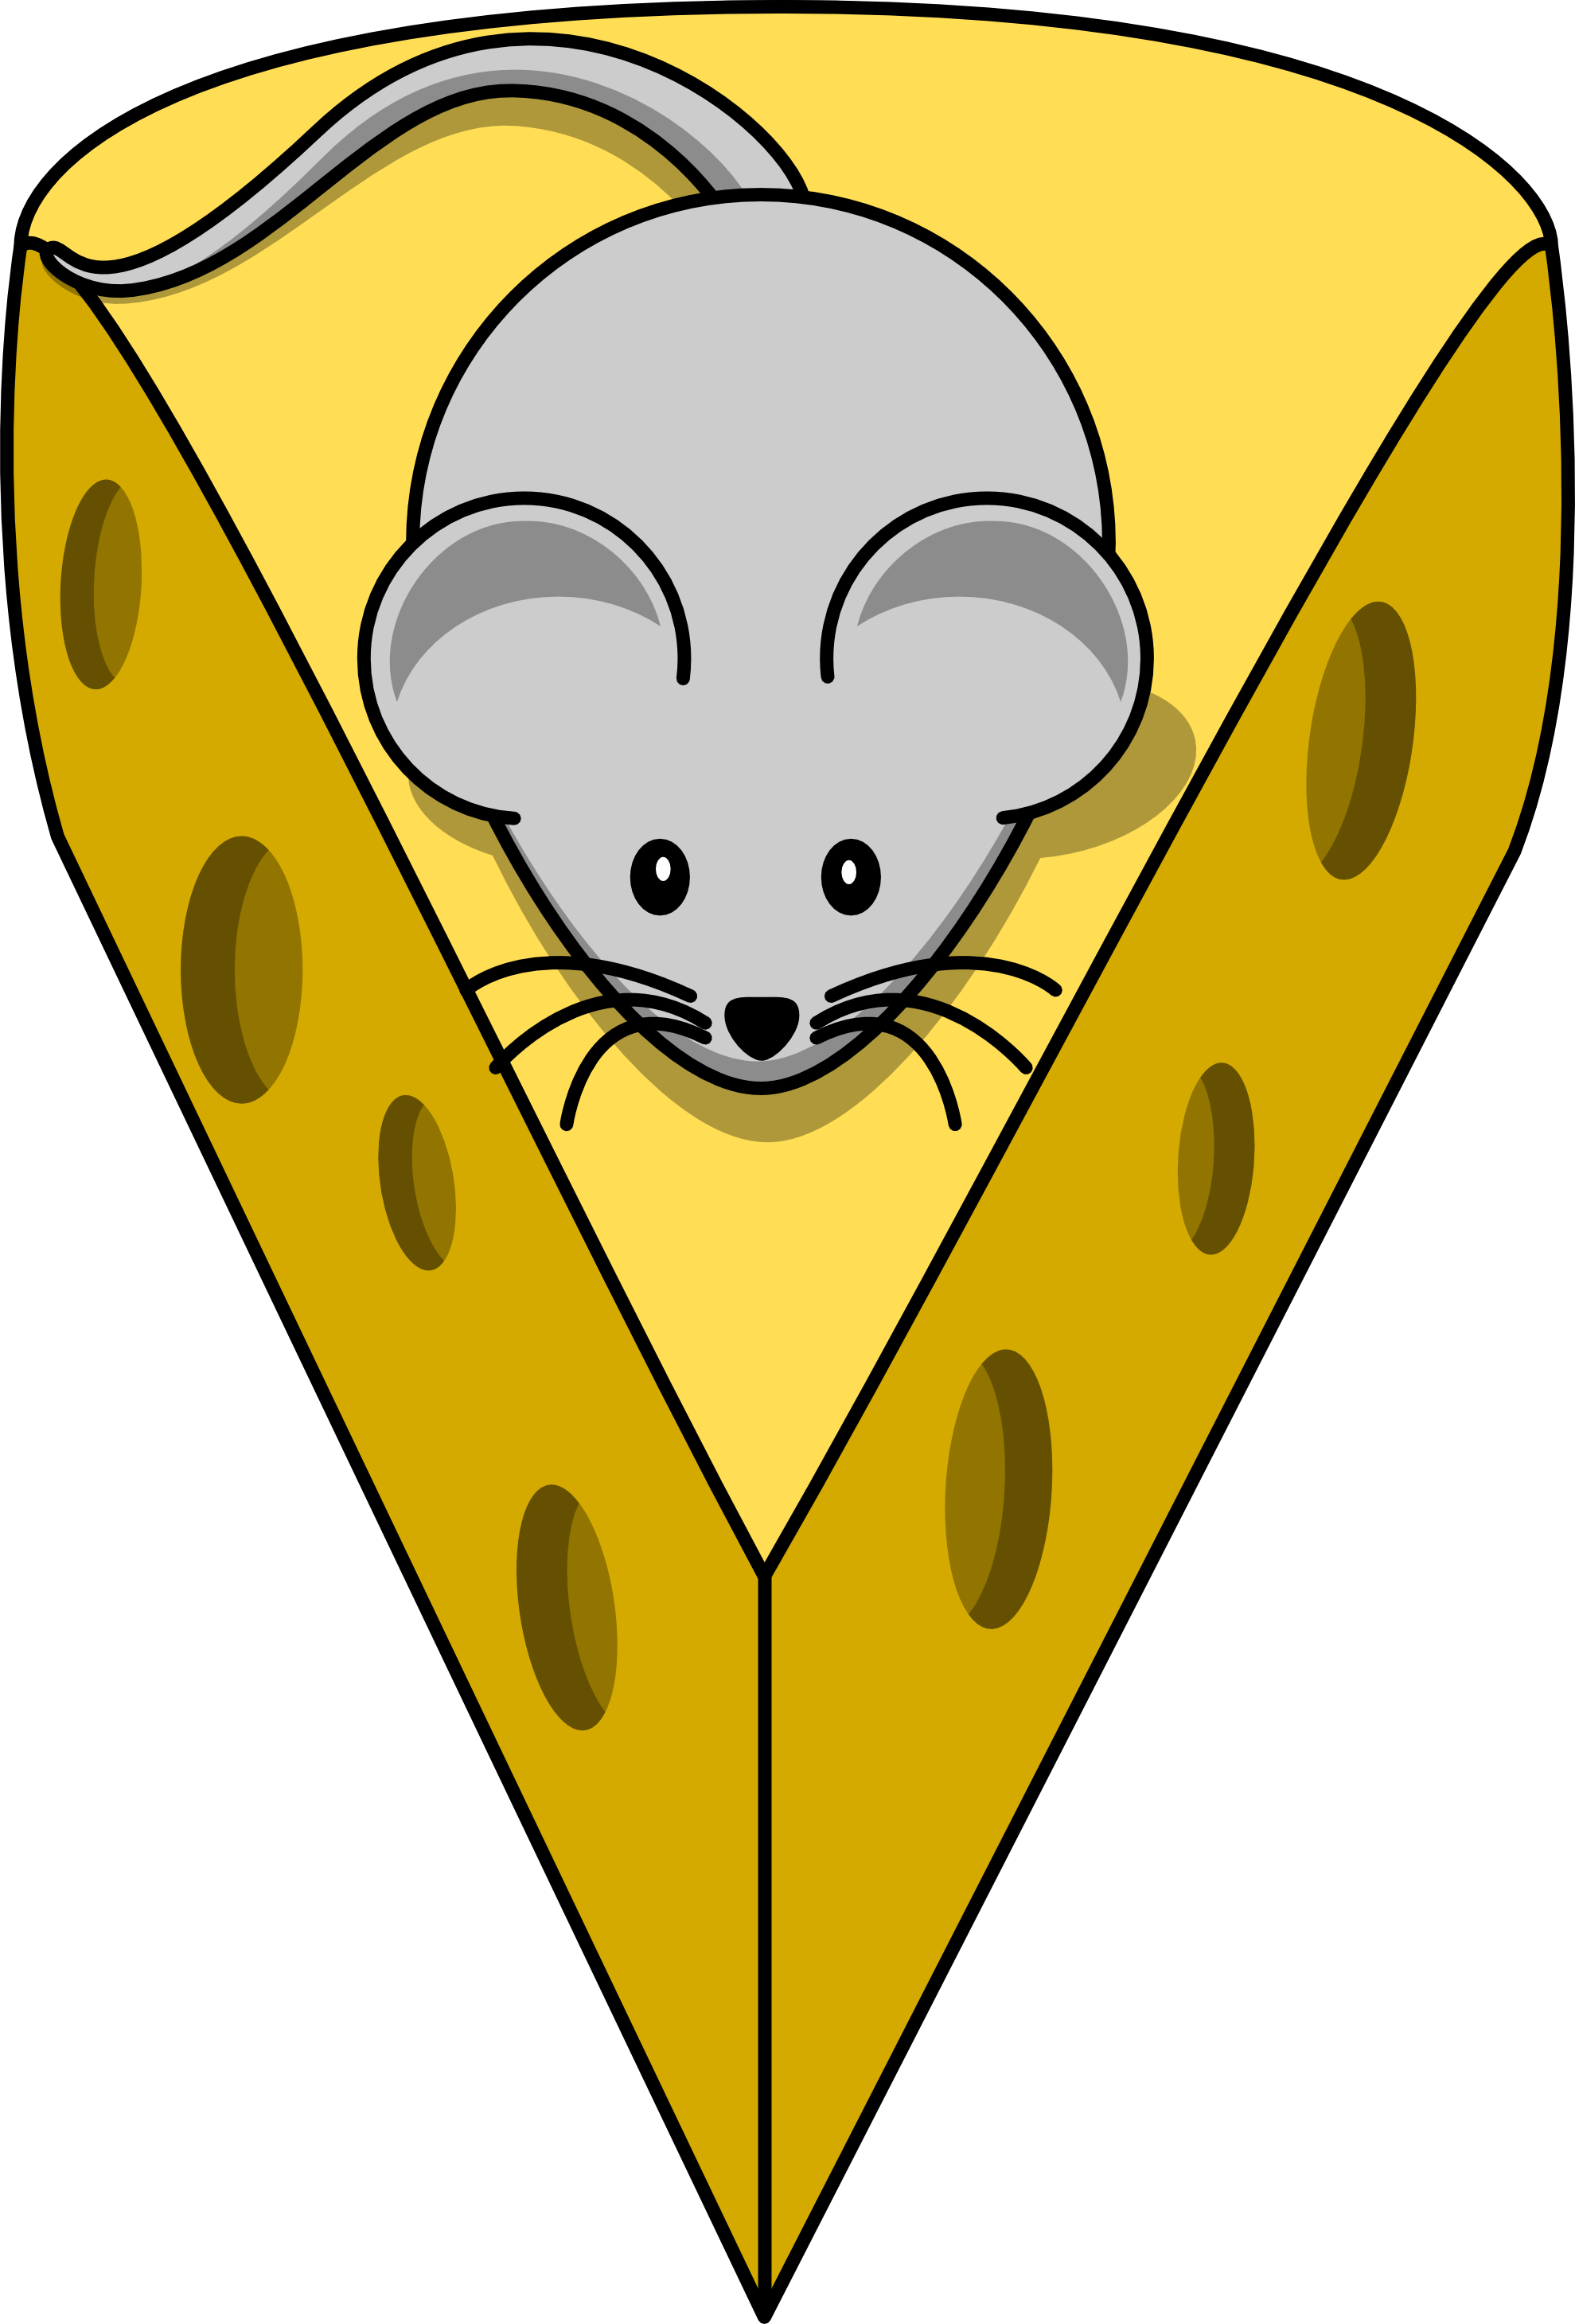 Book mouse clipart clipart freeuse library Mouse Cheese Clipart | Clipart Panda - Free Clipart Images clipart freeuse library